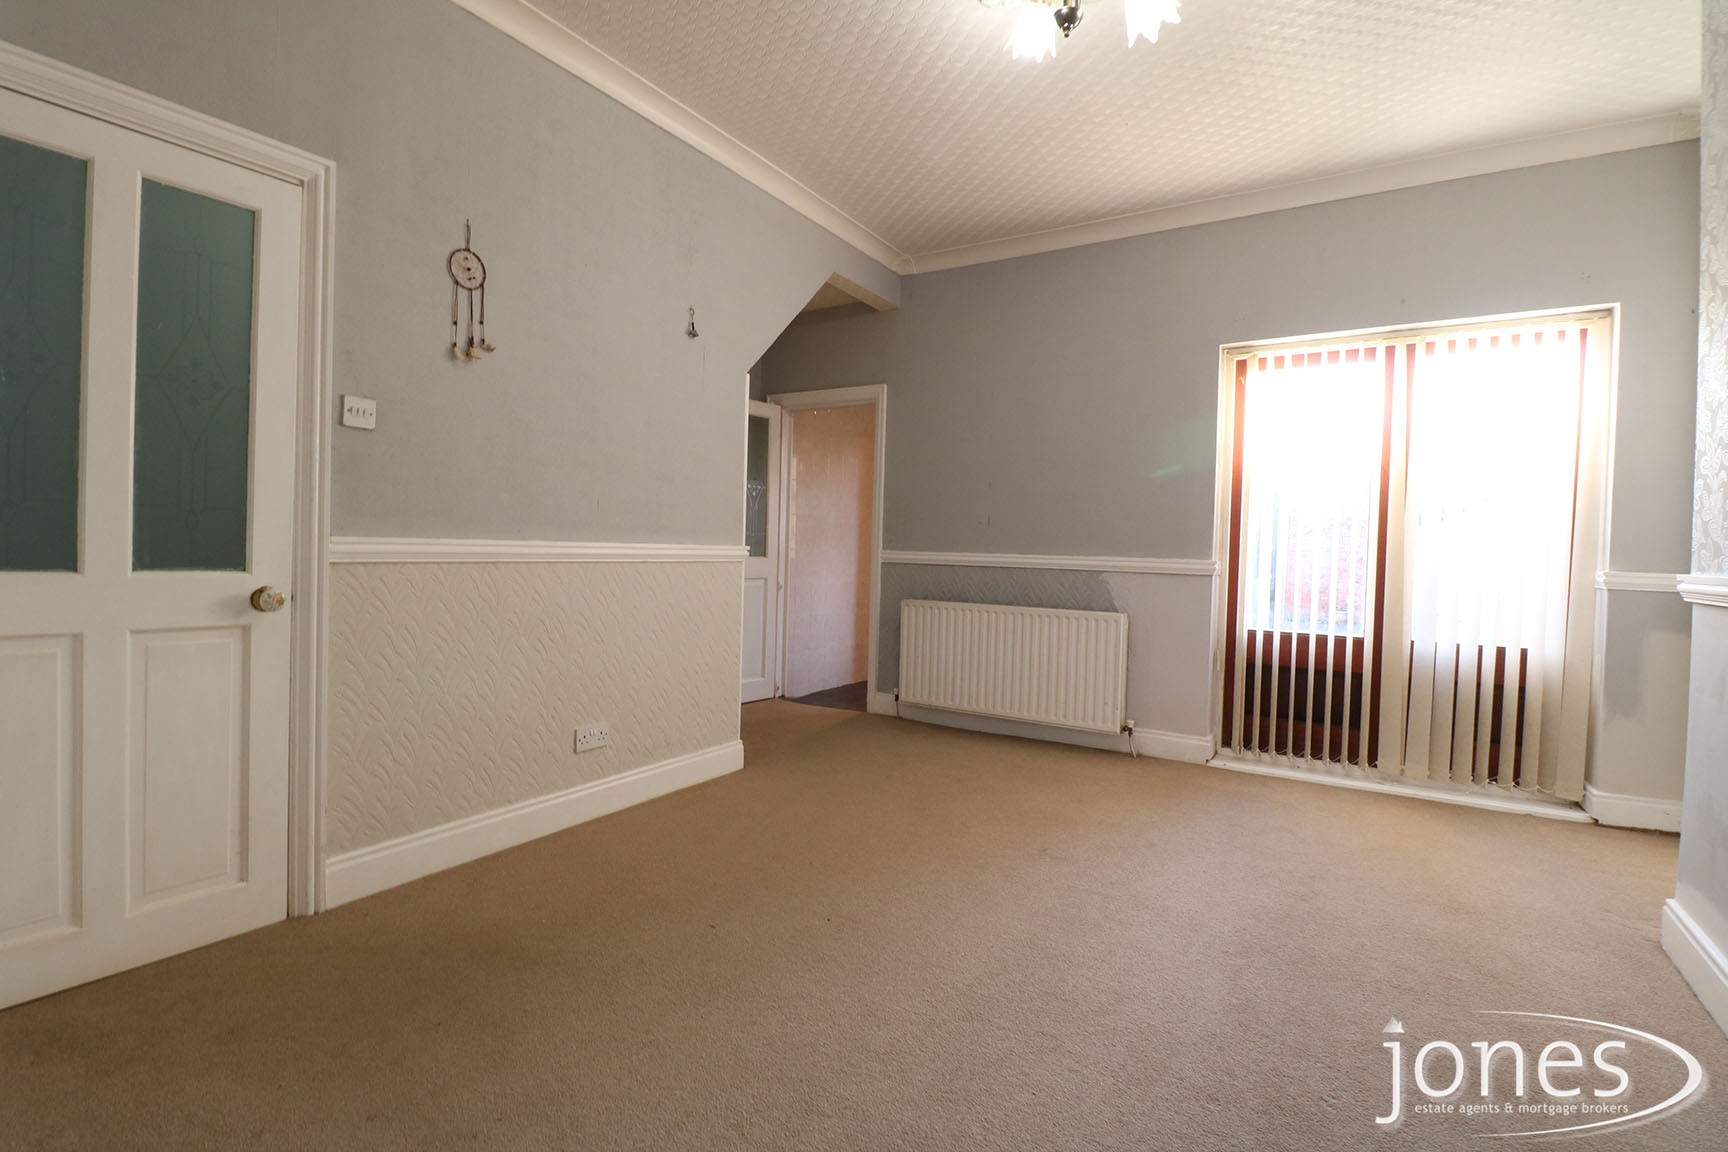 Home for Sale Let - Photo 03 Lambton Road,  Stockton on Tees, TS19 0ER